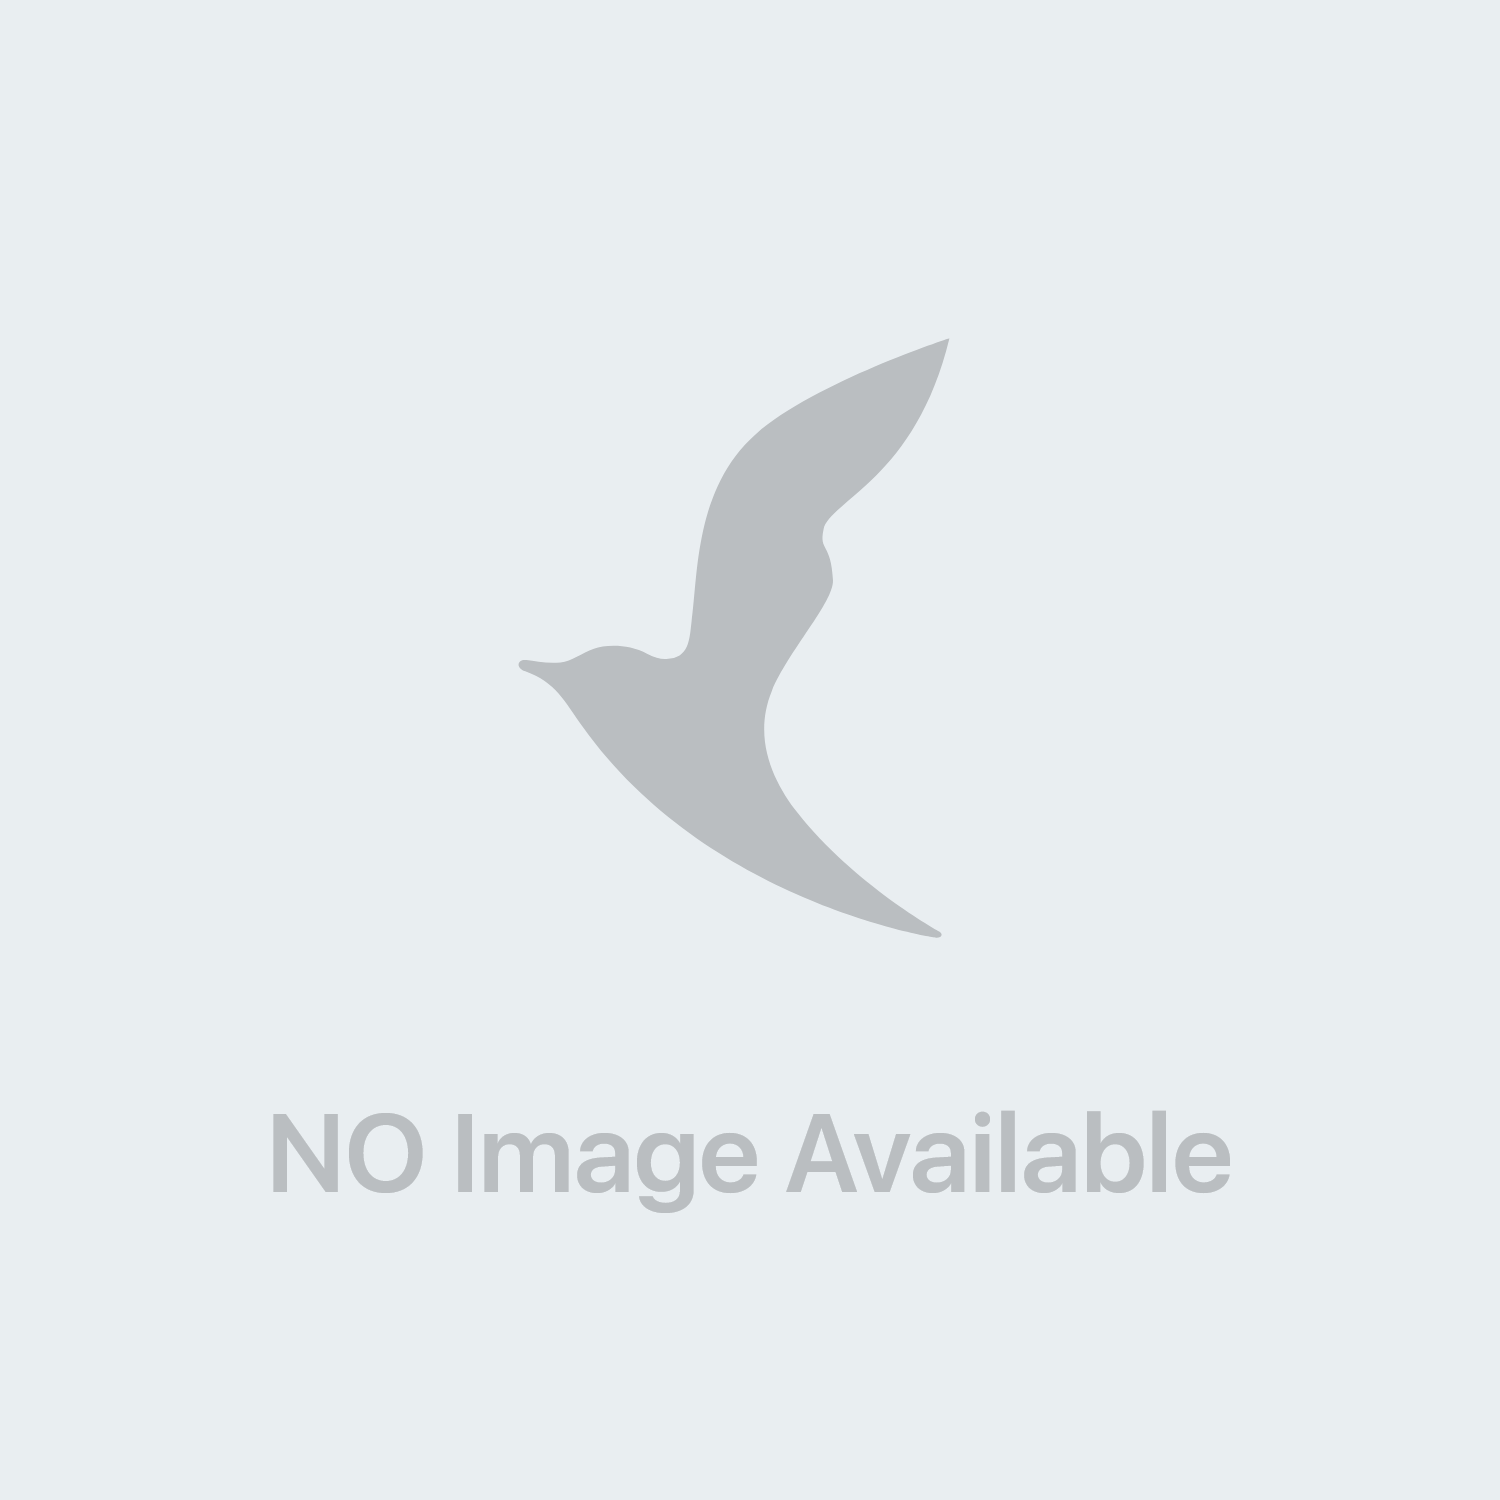 Iodosan Gola Action 20 Compresse Orosolubili 3 mg + 1 mg